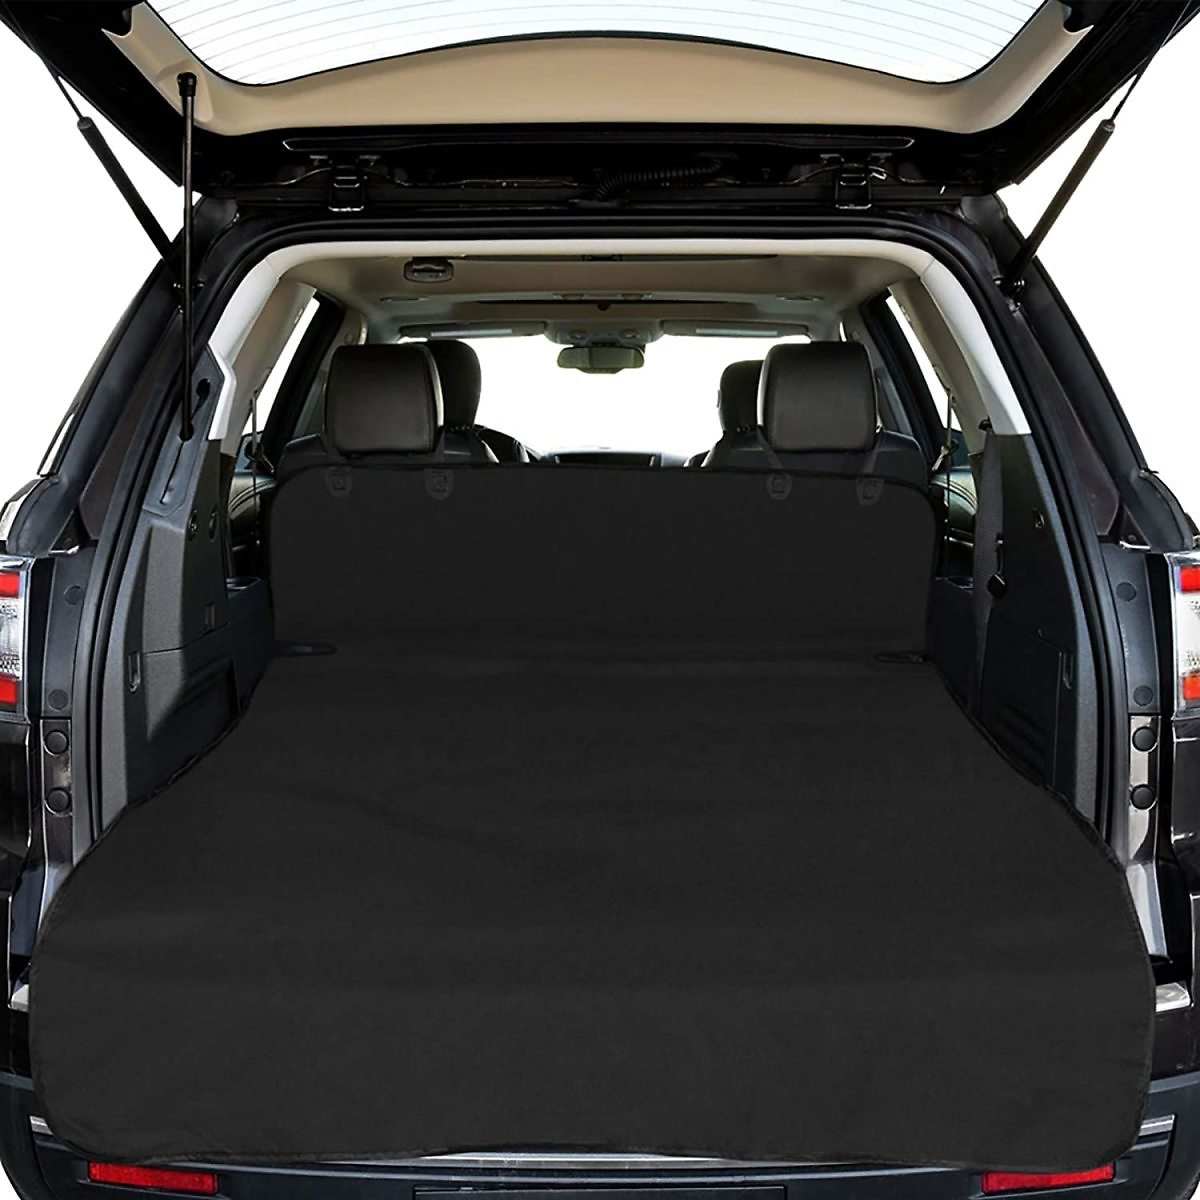 F-color SUV Cargo Liner for Dogs, Water Resistant Pet Cargo Cover Dog Seat Cover Mat for $21.99